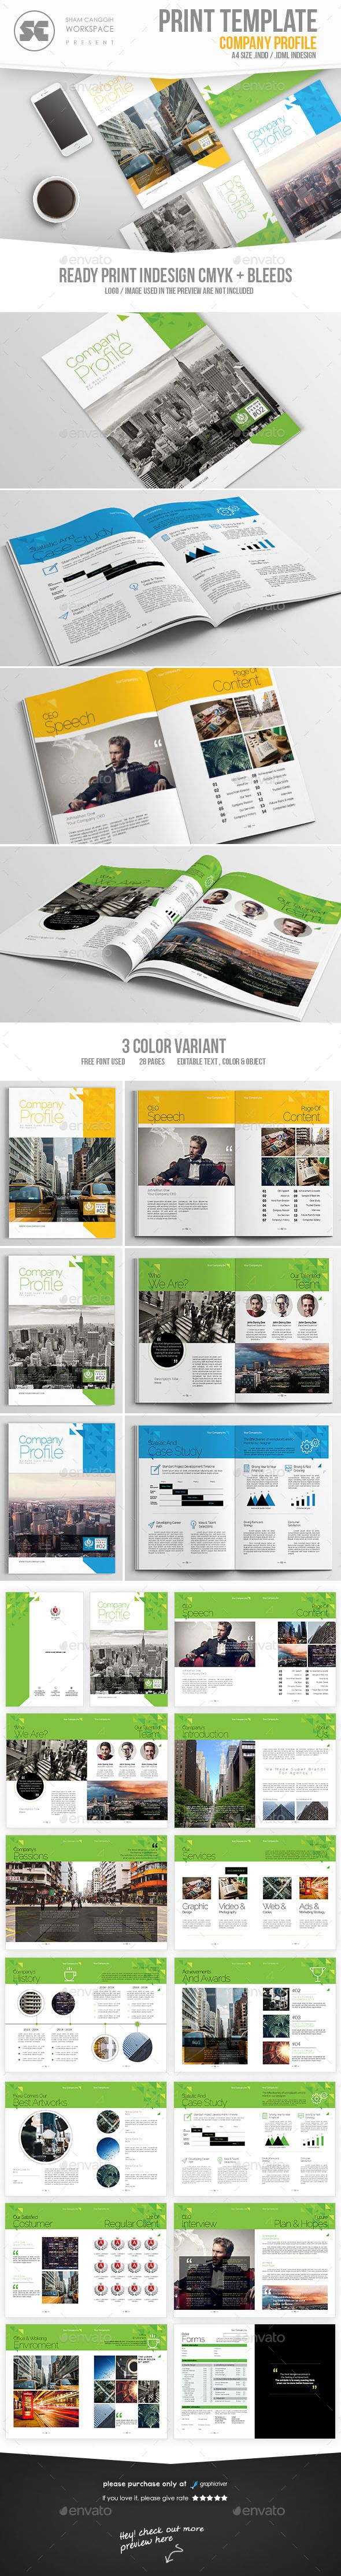 Company Profile — InDesign INDD #corporate #corporate profile • Available here → https://graphicriver.net/item/company-profile/17888463?ref=pxcr